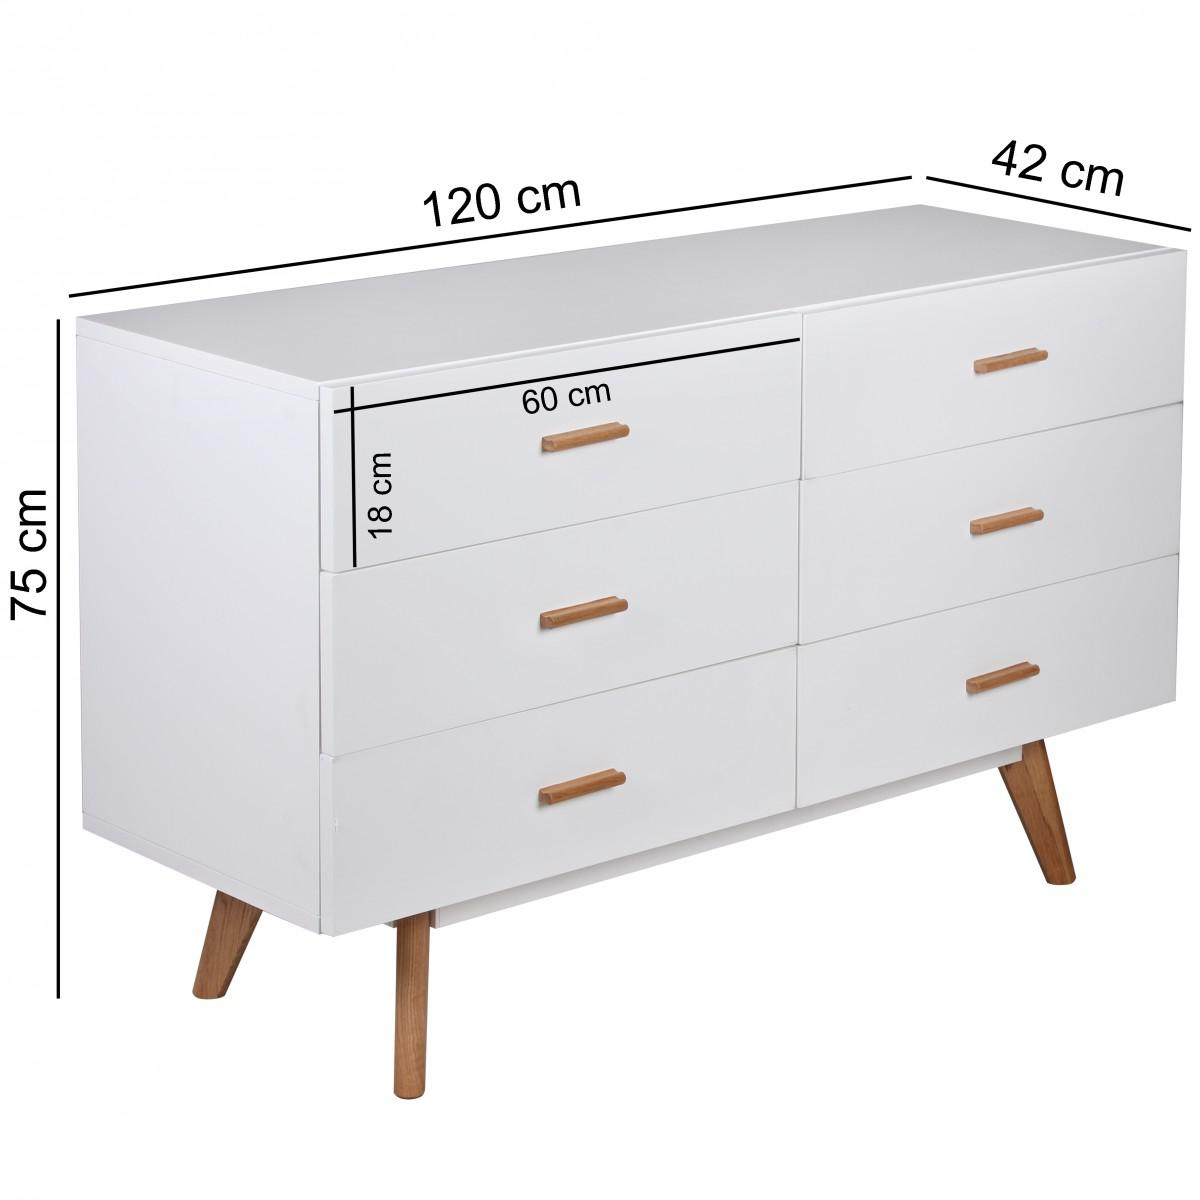 wohnling retro sideboard scanio kommode skandinavisch mit 6 schubladen mdf wei matt f e eiche. Black Bedroom Furniture Sets. Home Design Ideas